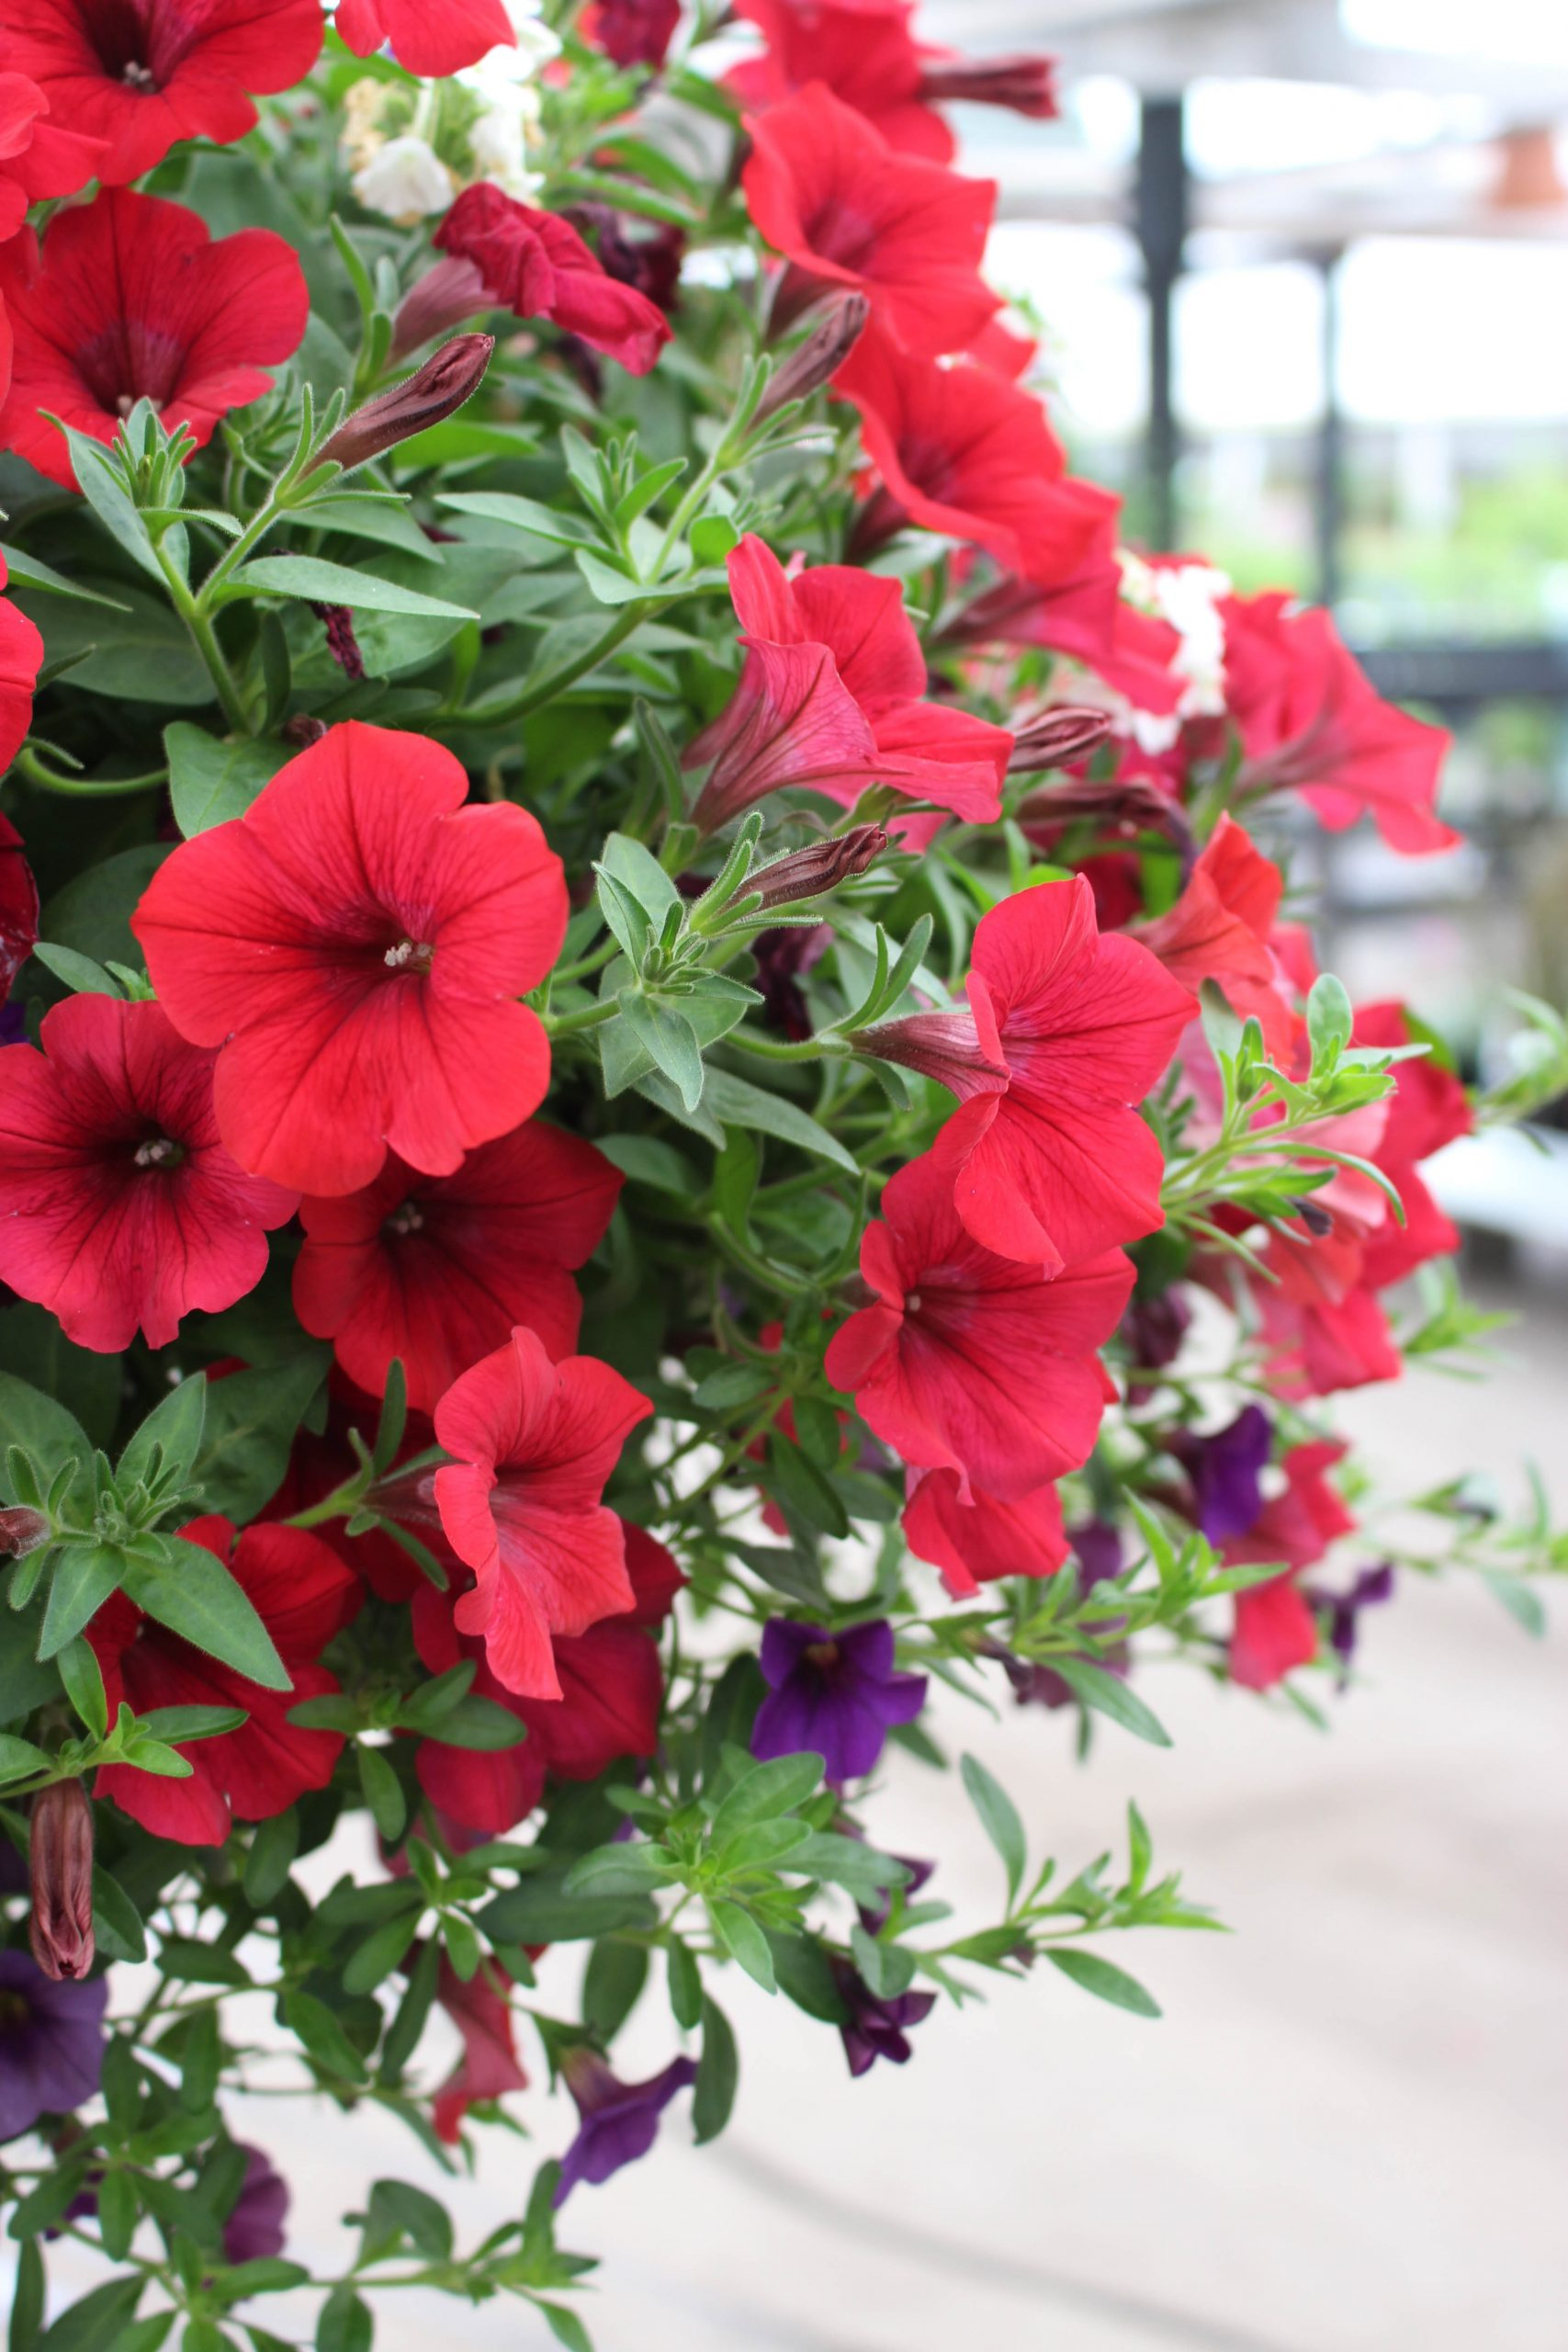 Petunia Flowers in Hanging Basket